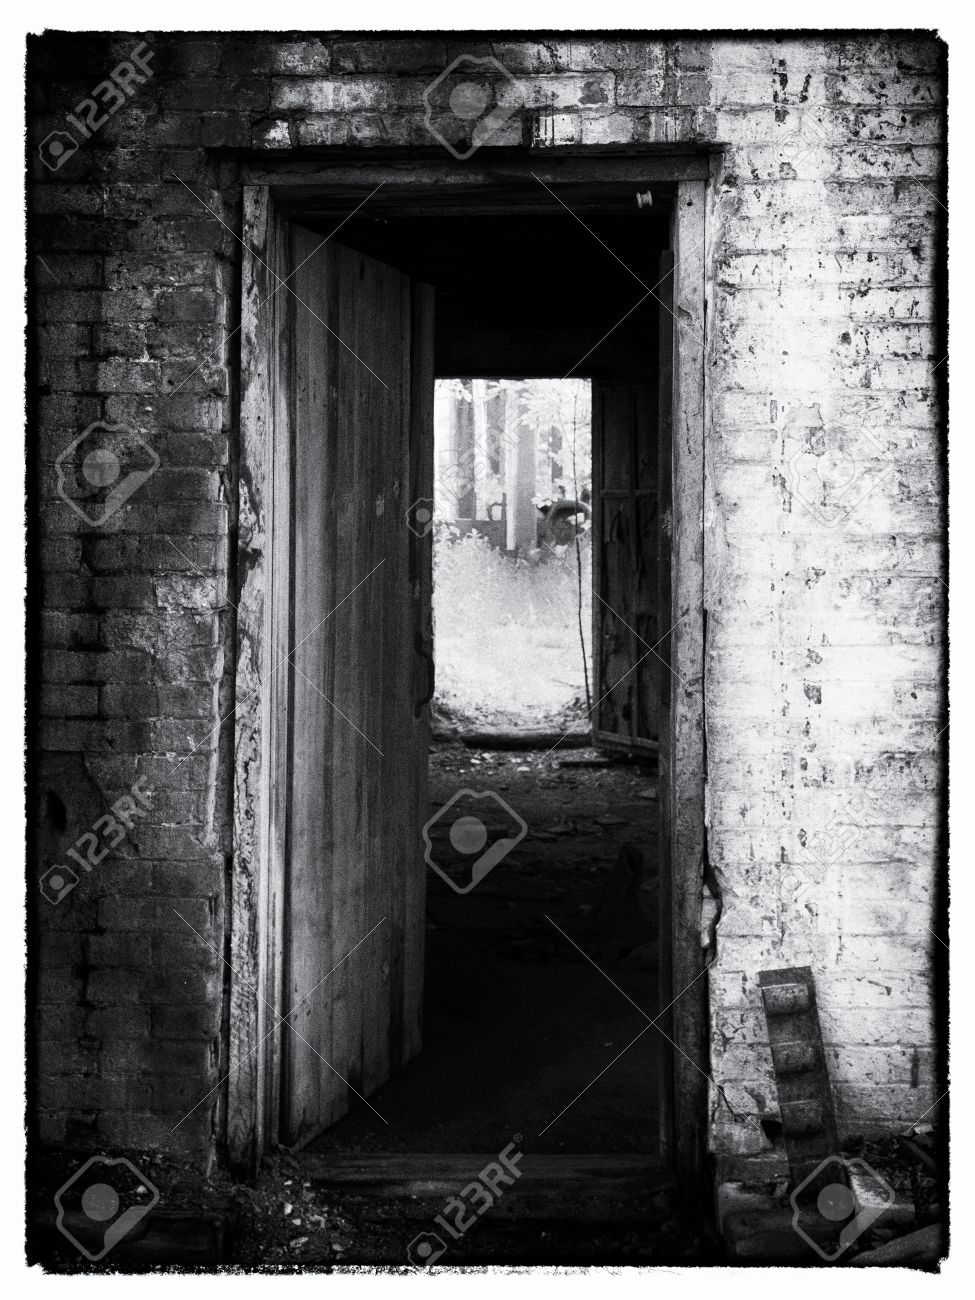 Black and white image of open door